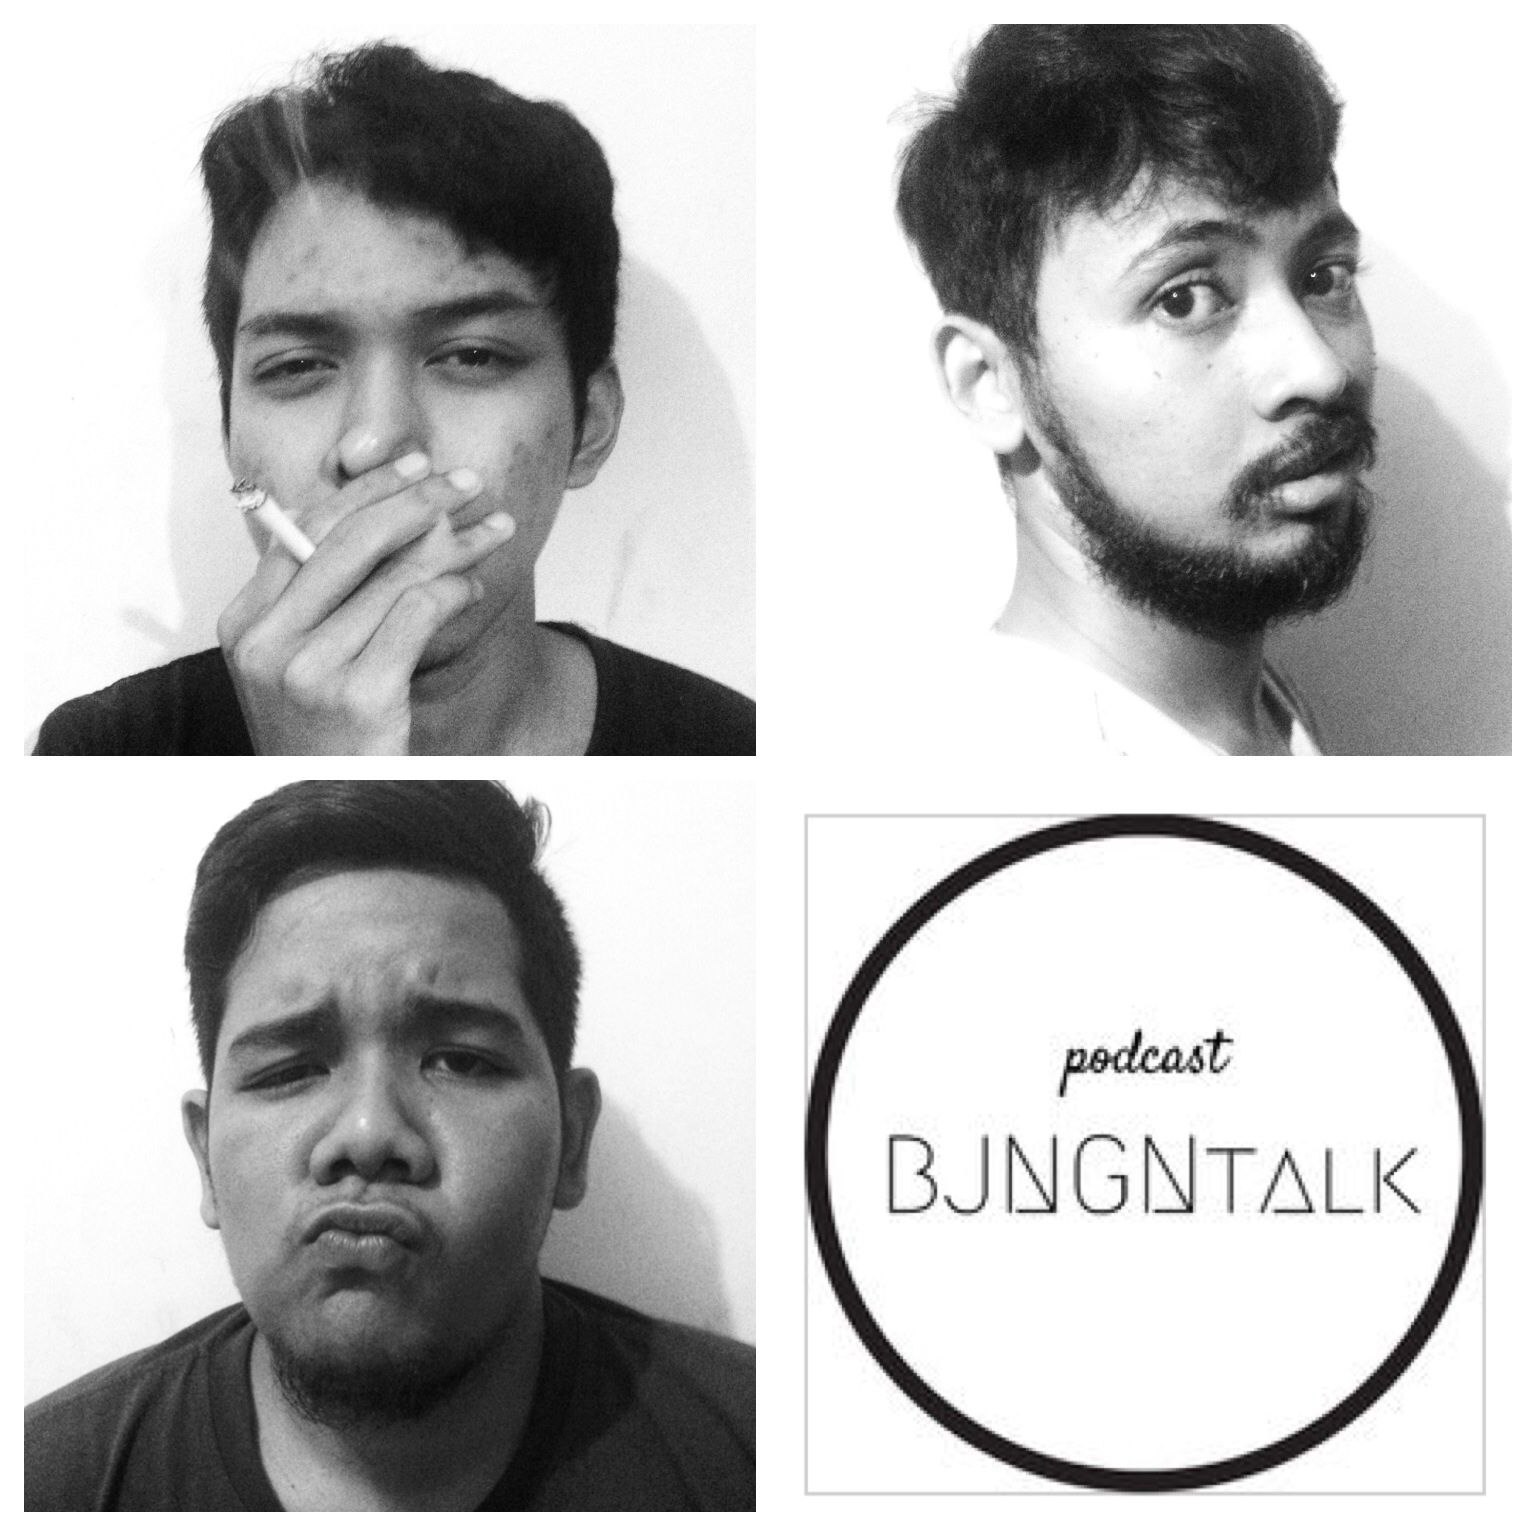 Podcast BJNGNtalk